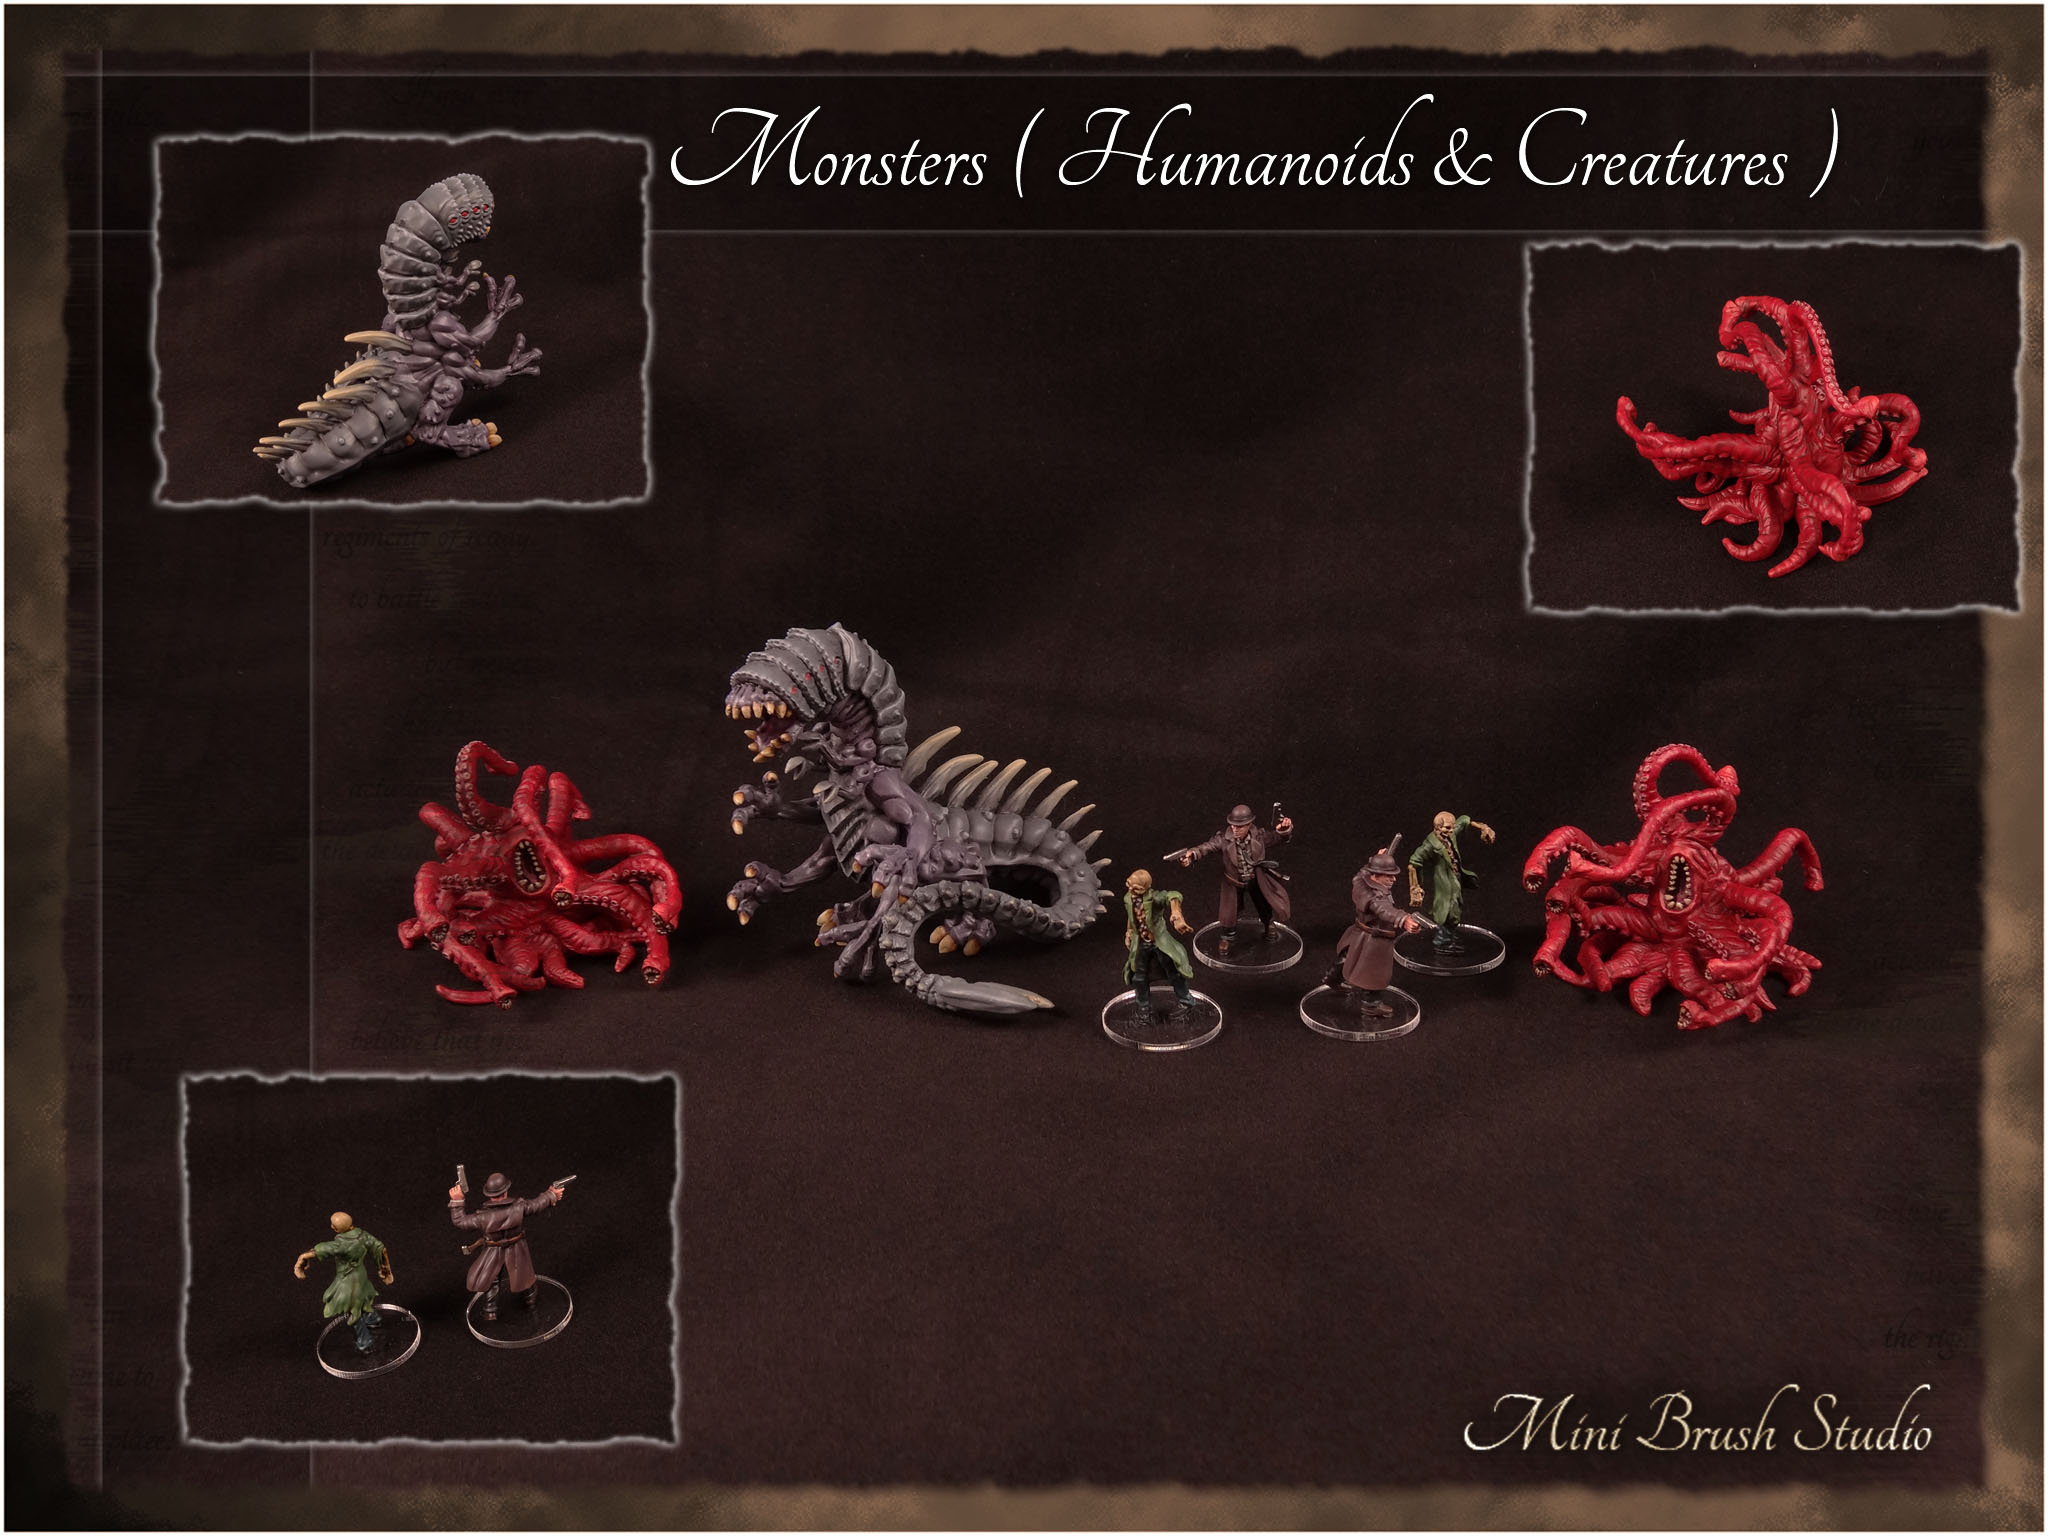 Monsters ( Humanoids & Creatures ) 1 v7.jpg